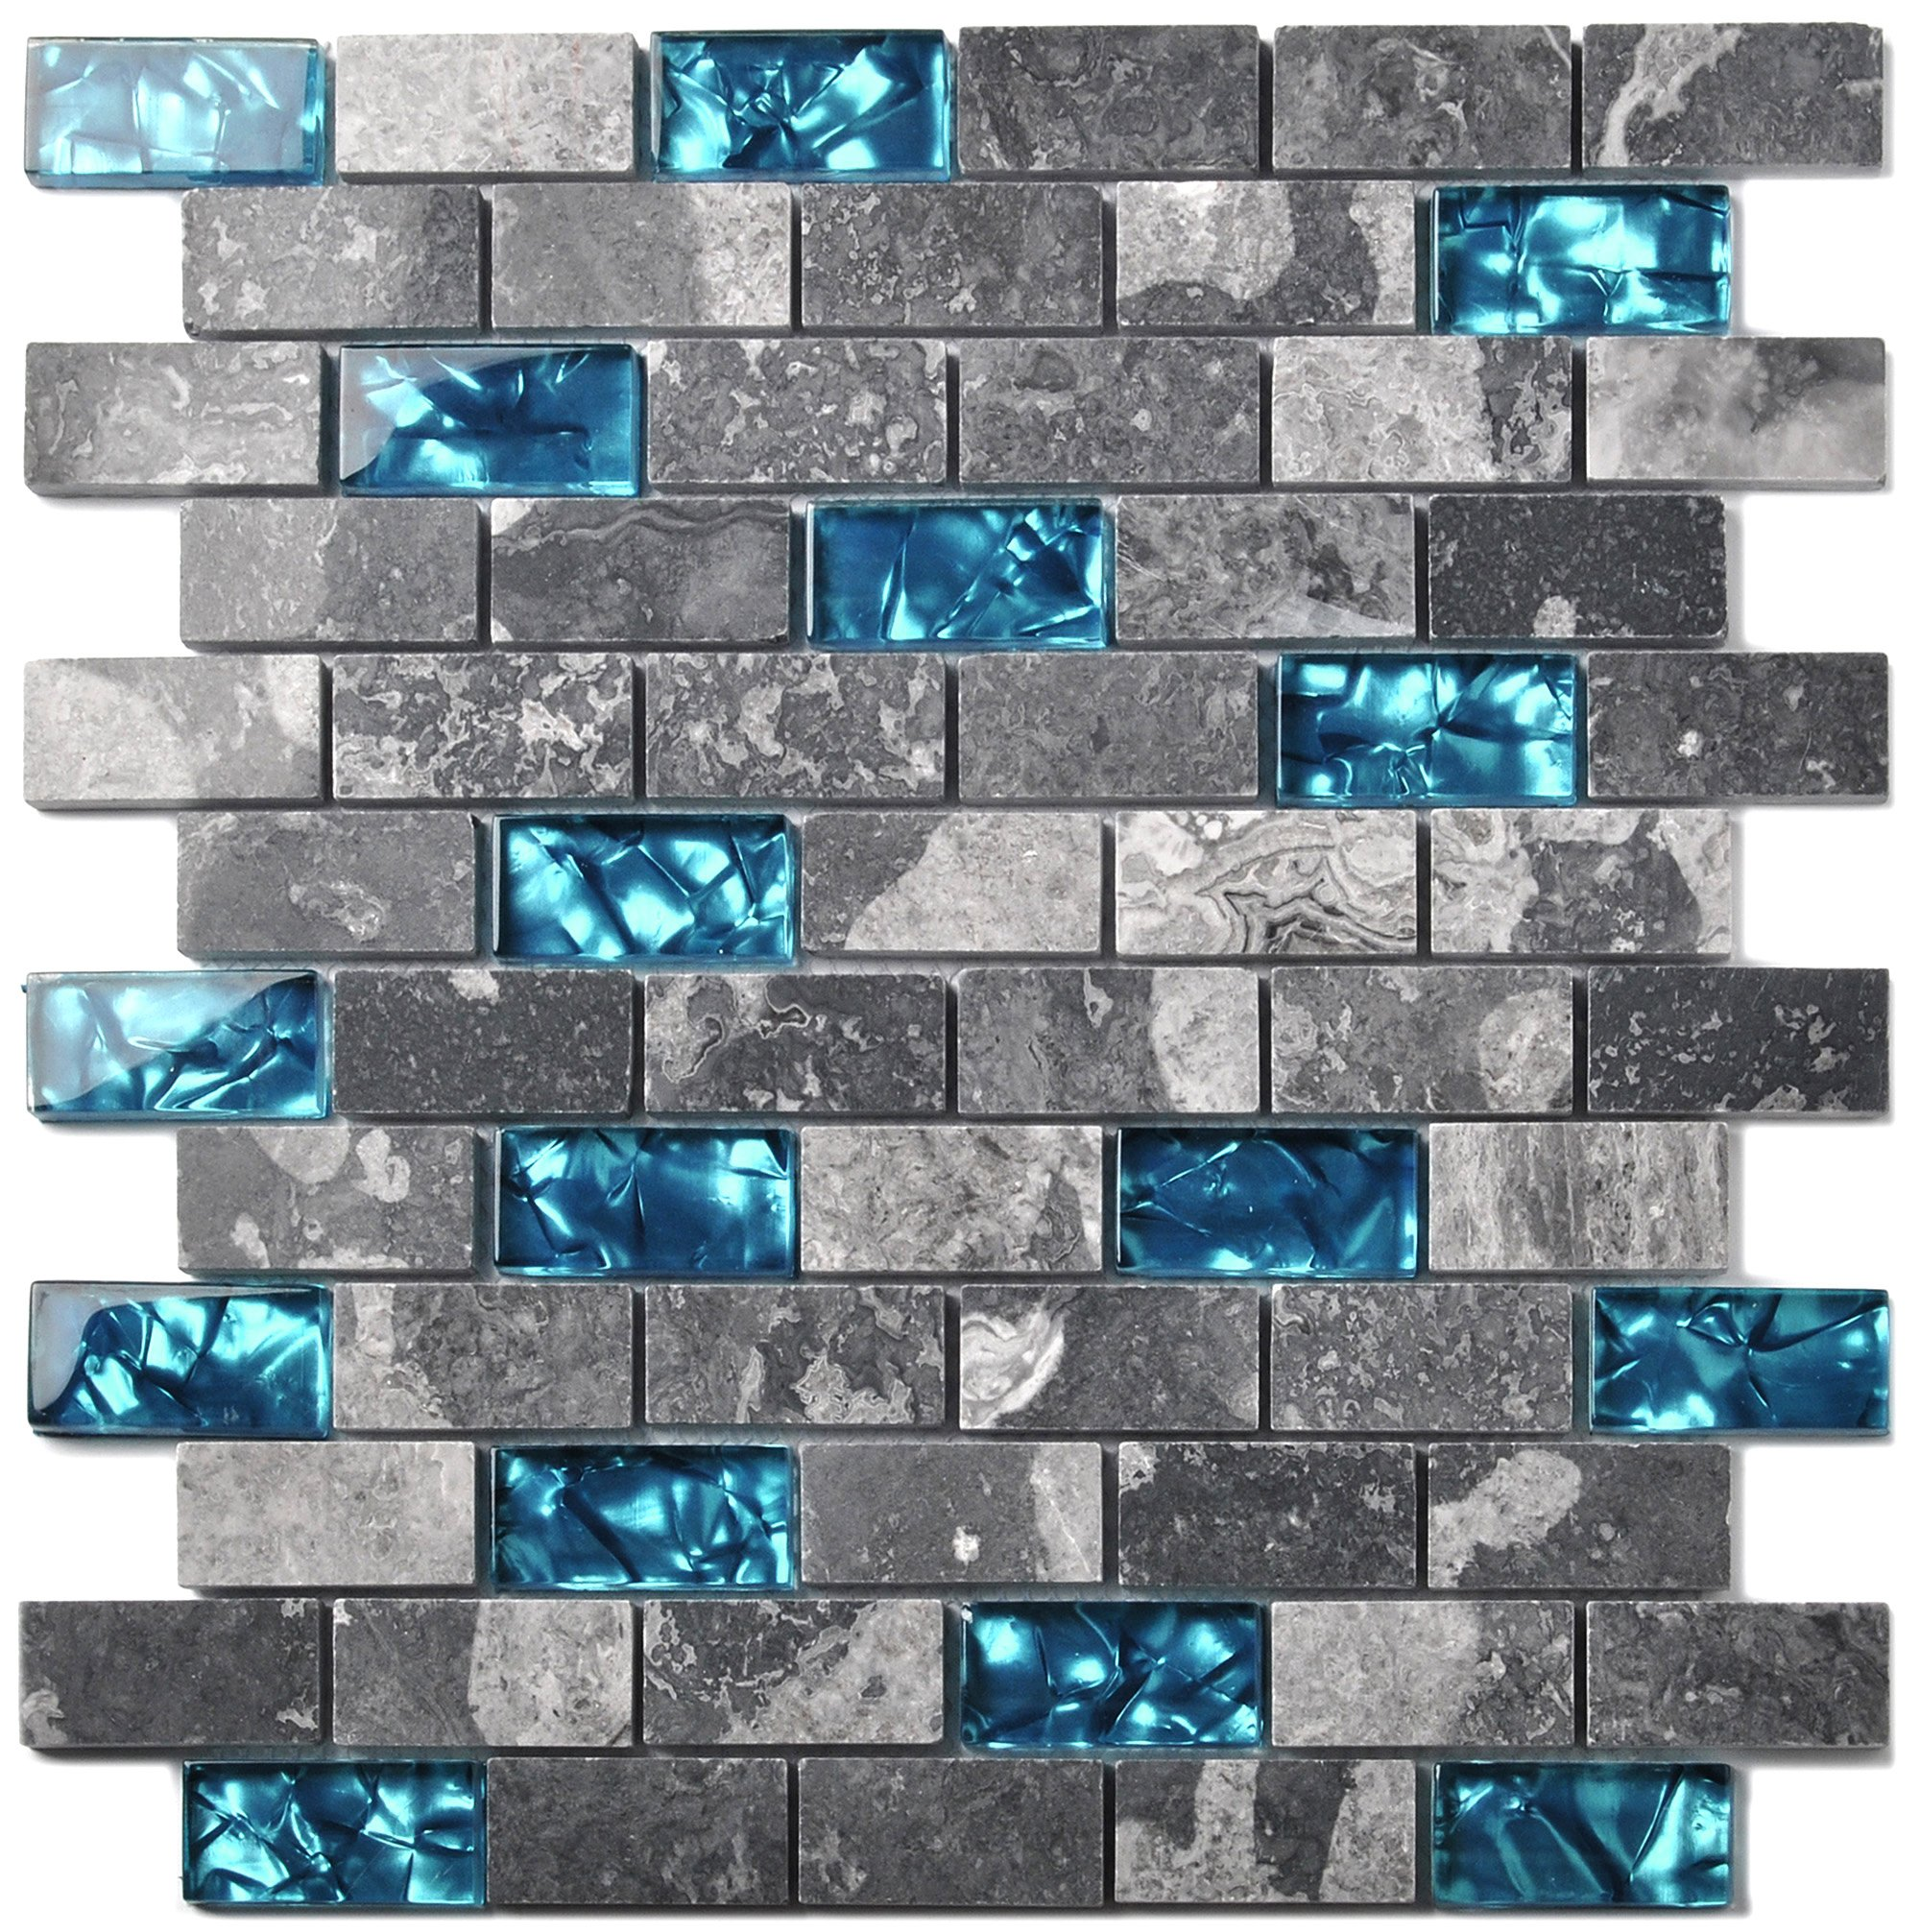 Ocean Teal Blue Glass Nature Stone Tile Kitchen Backsplash 3D Bath Shower Accent Wall Decor Gray Wave Marble 1 x 2 Subway Art Mosaics TSTNB03 (5 PCS [11.8'' X 11.8''/Each])